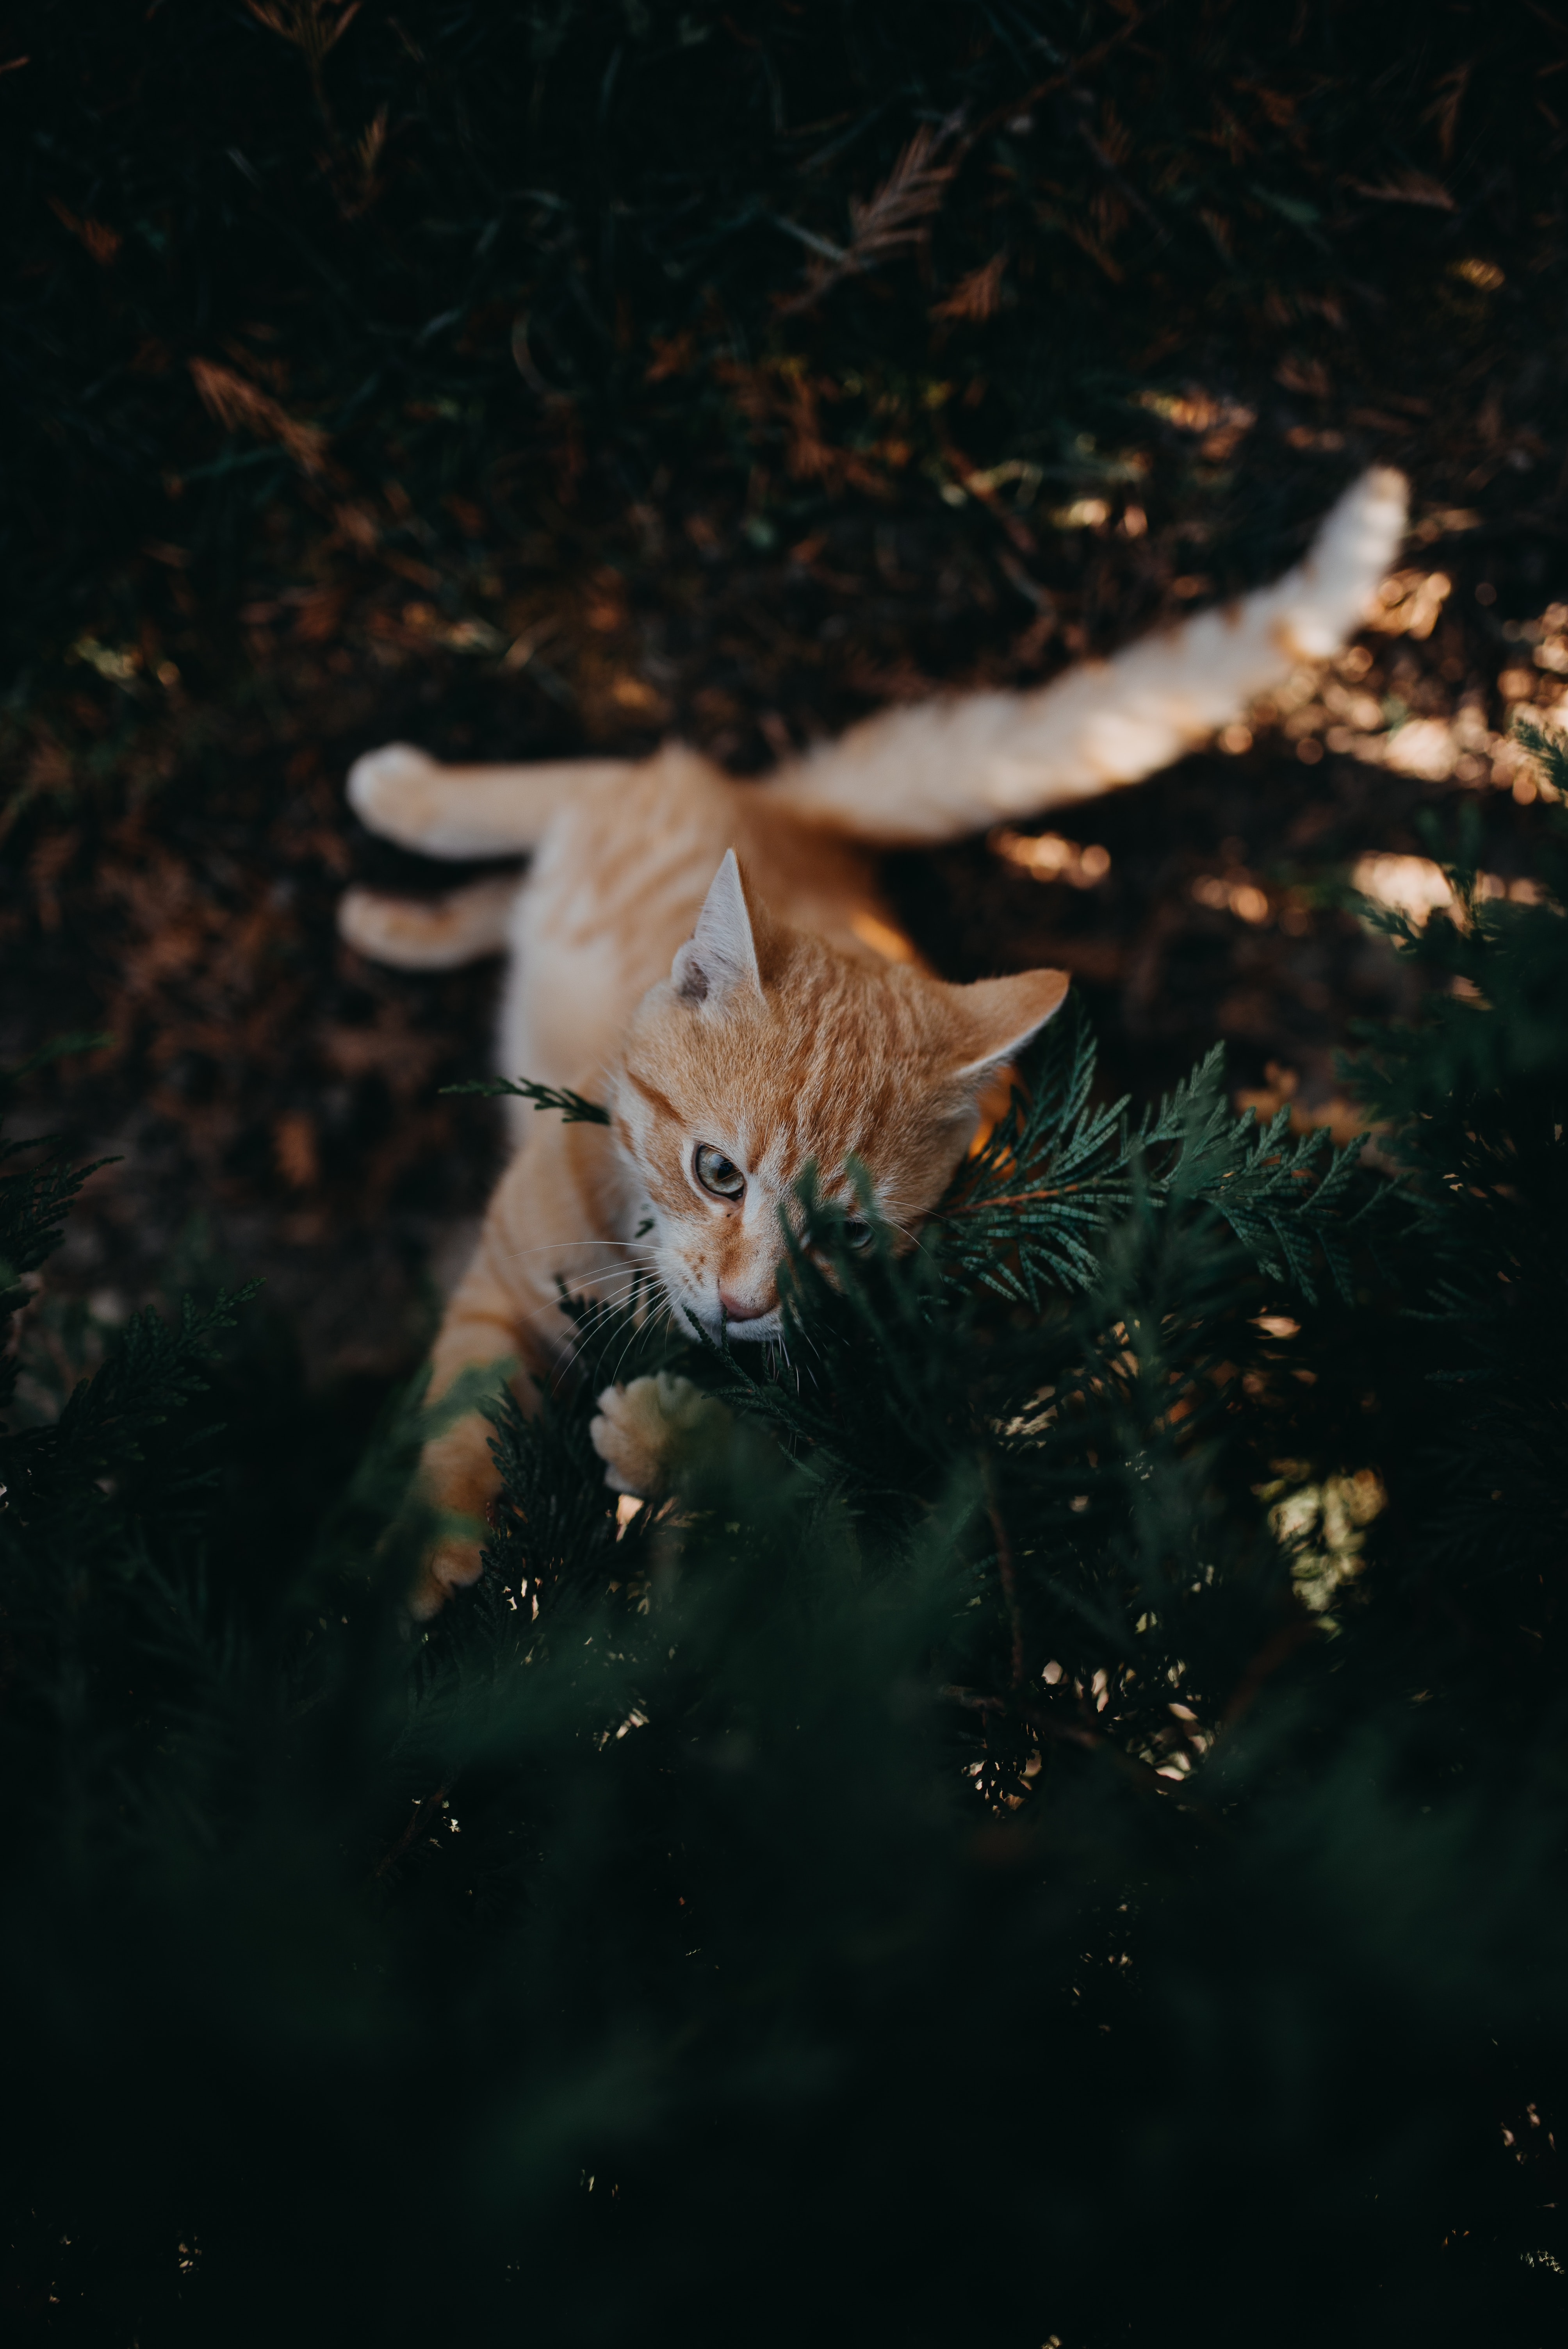 143590 download wallpaper Animals, Cat, Branch, Nice, Sweetheart, Playful, Pet screensavers and pictures for free